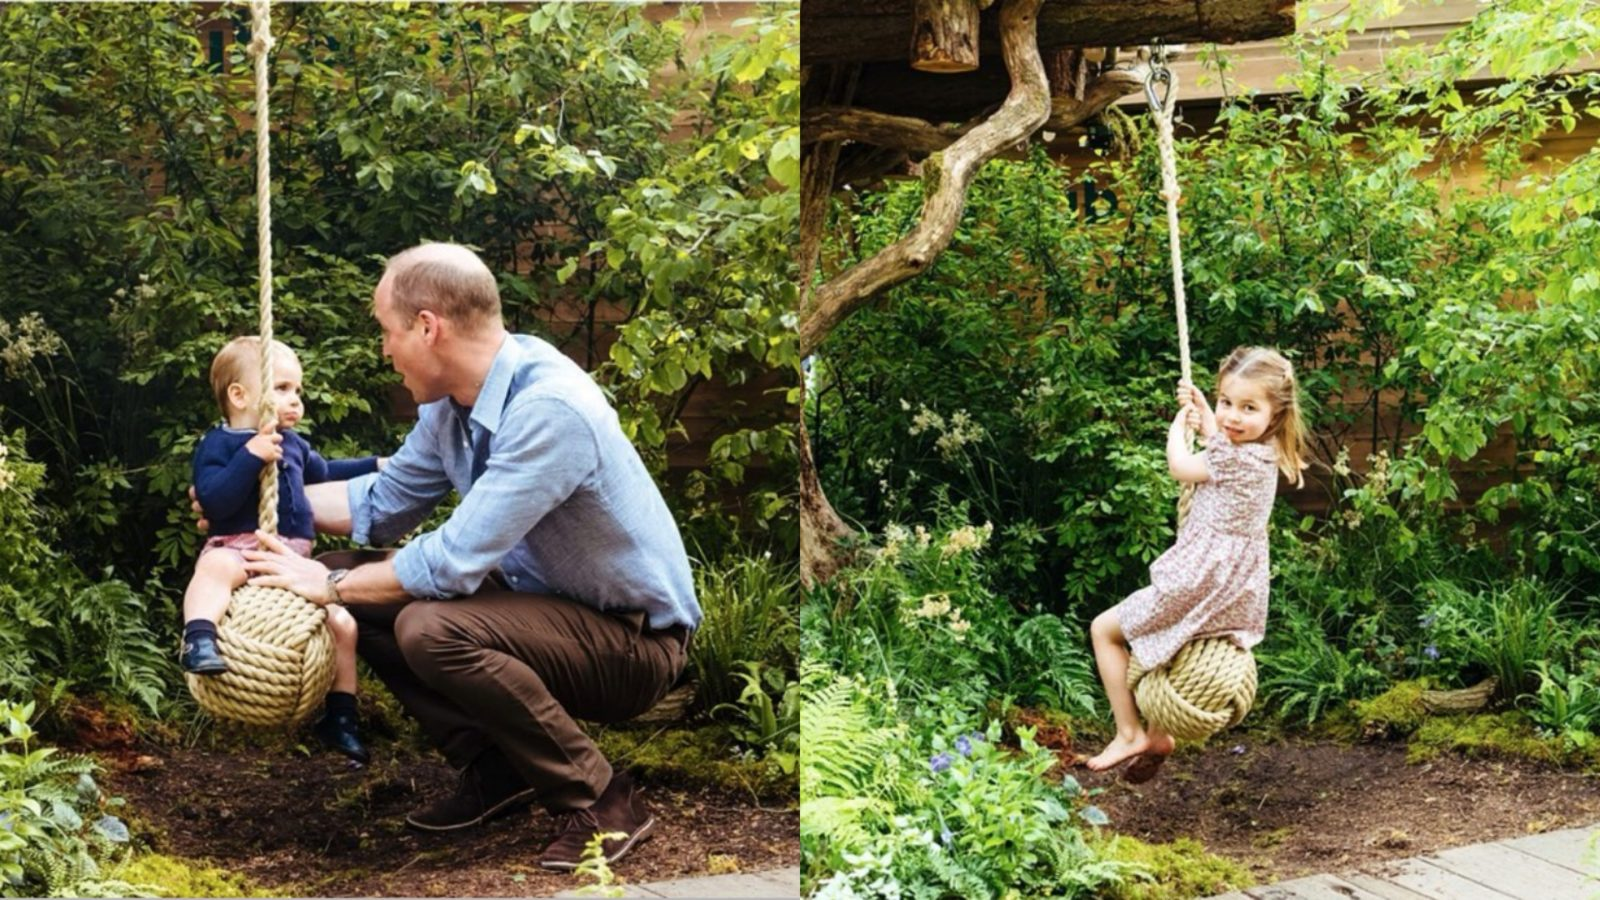 Prince William, Louis Louis and Princess Charlotte enjoyed their time at the Chelsea Flower Show.